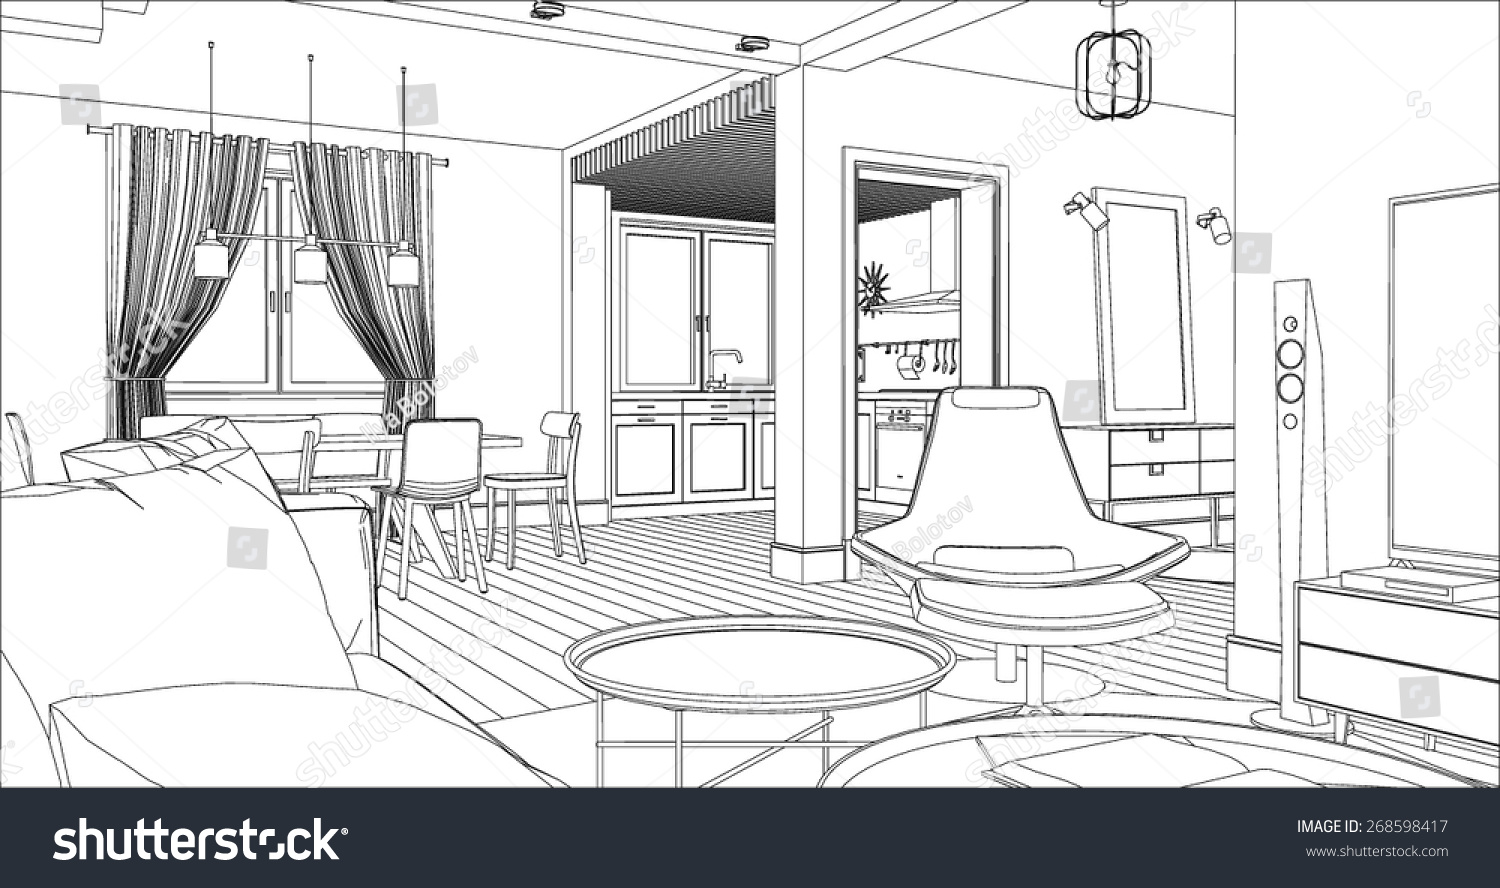 Living Room Interior Drawing. Architectural Design.